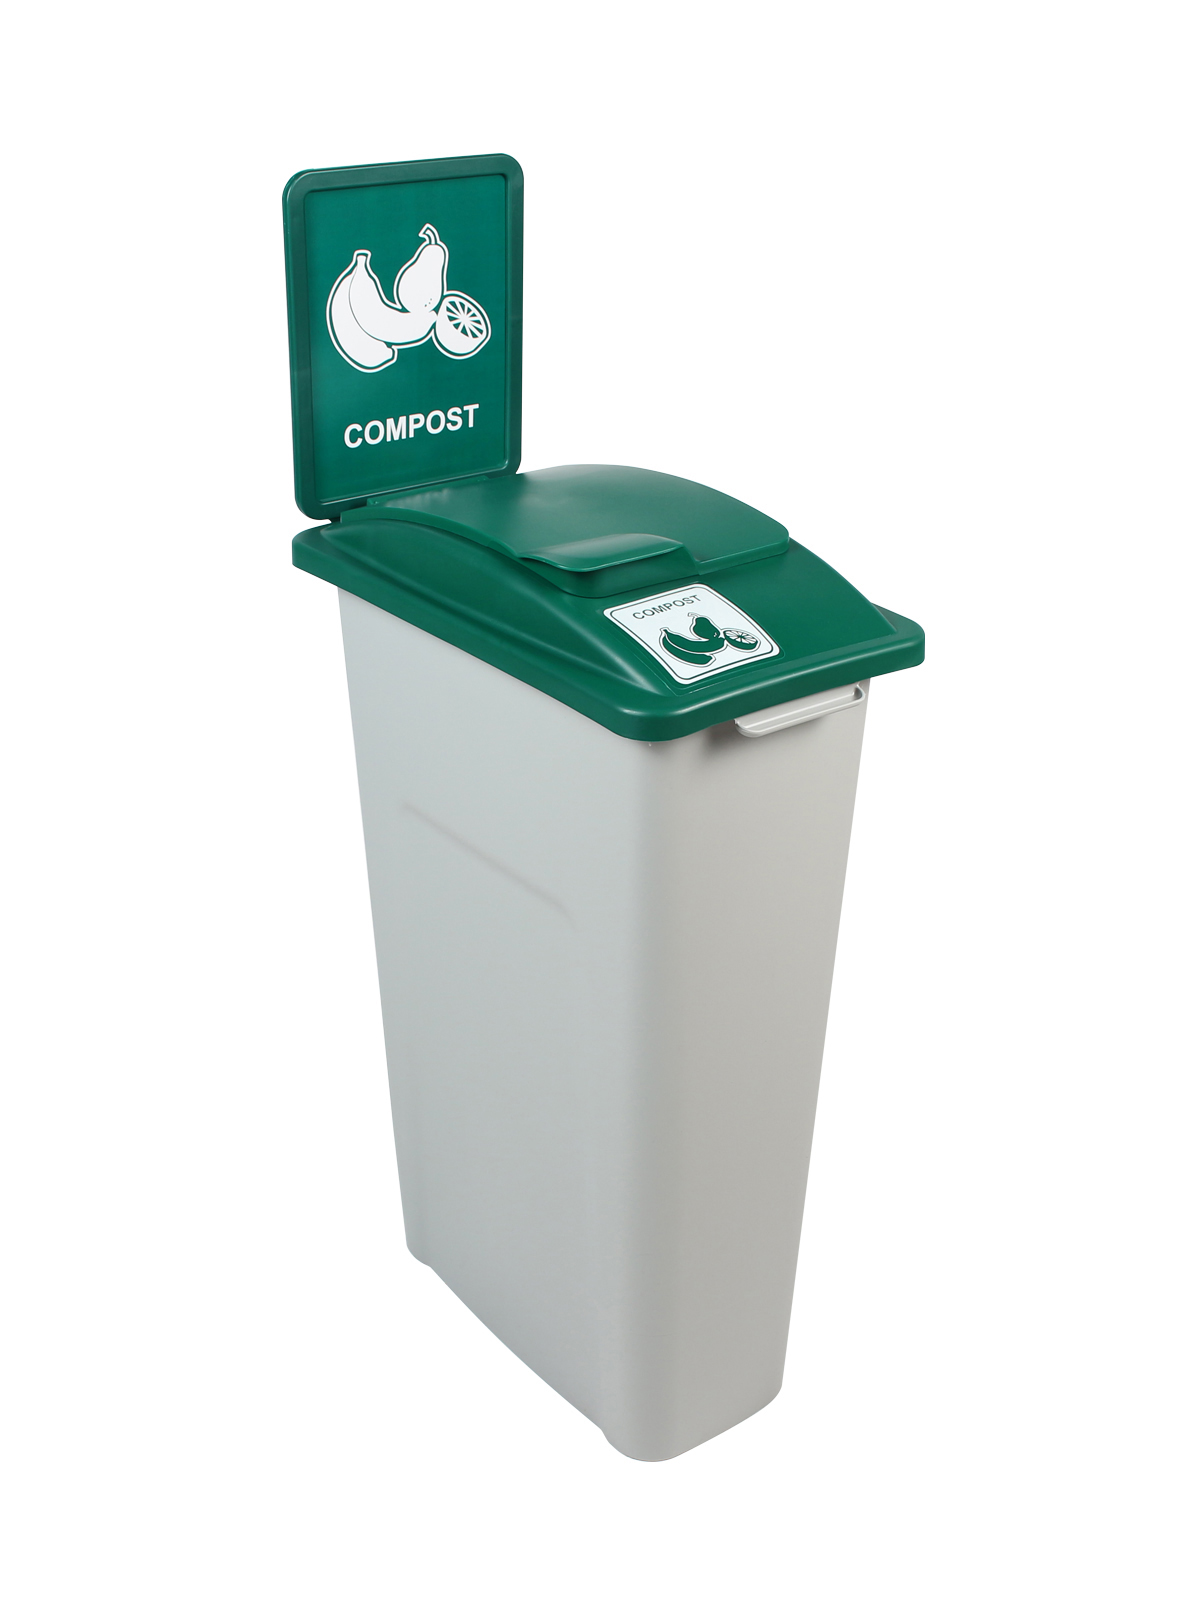 KIT WW 30 SINGLE - BDY/LID/SF - GRY/GRN COMPOST